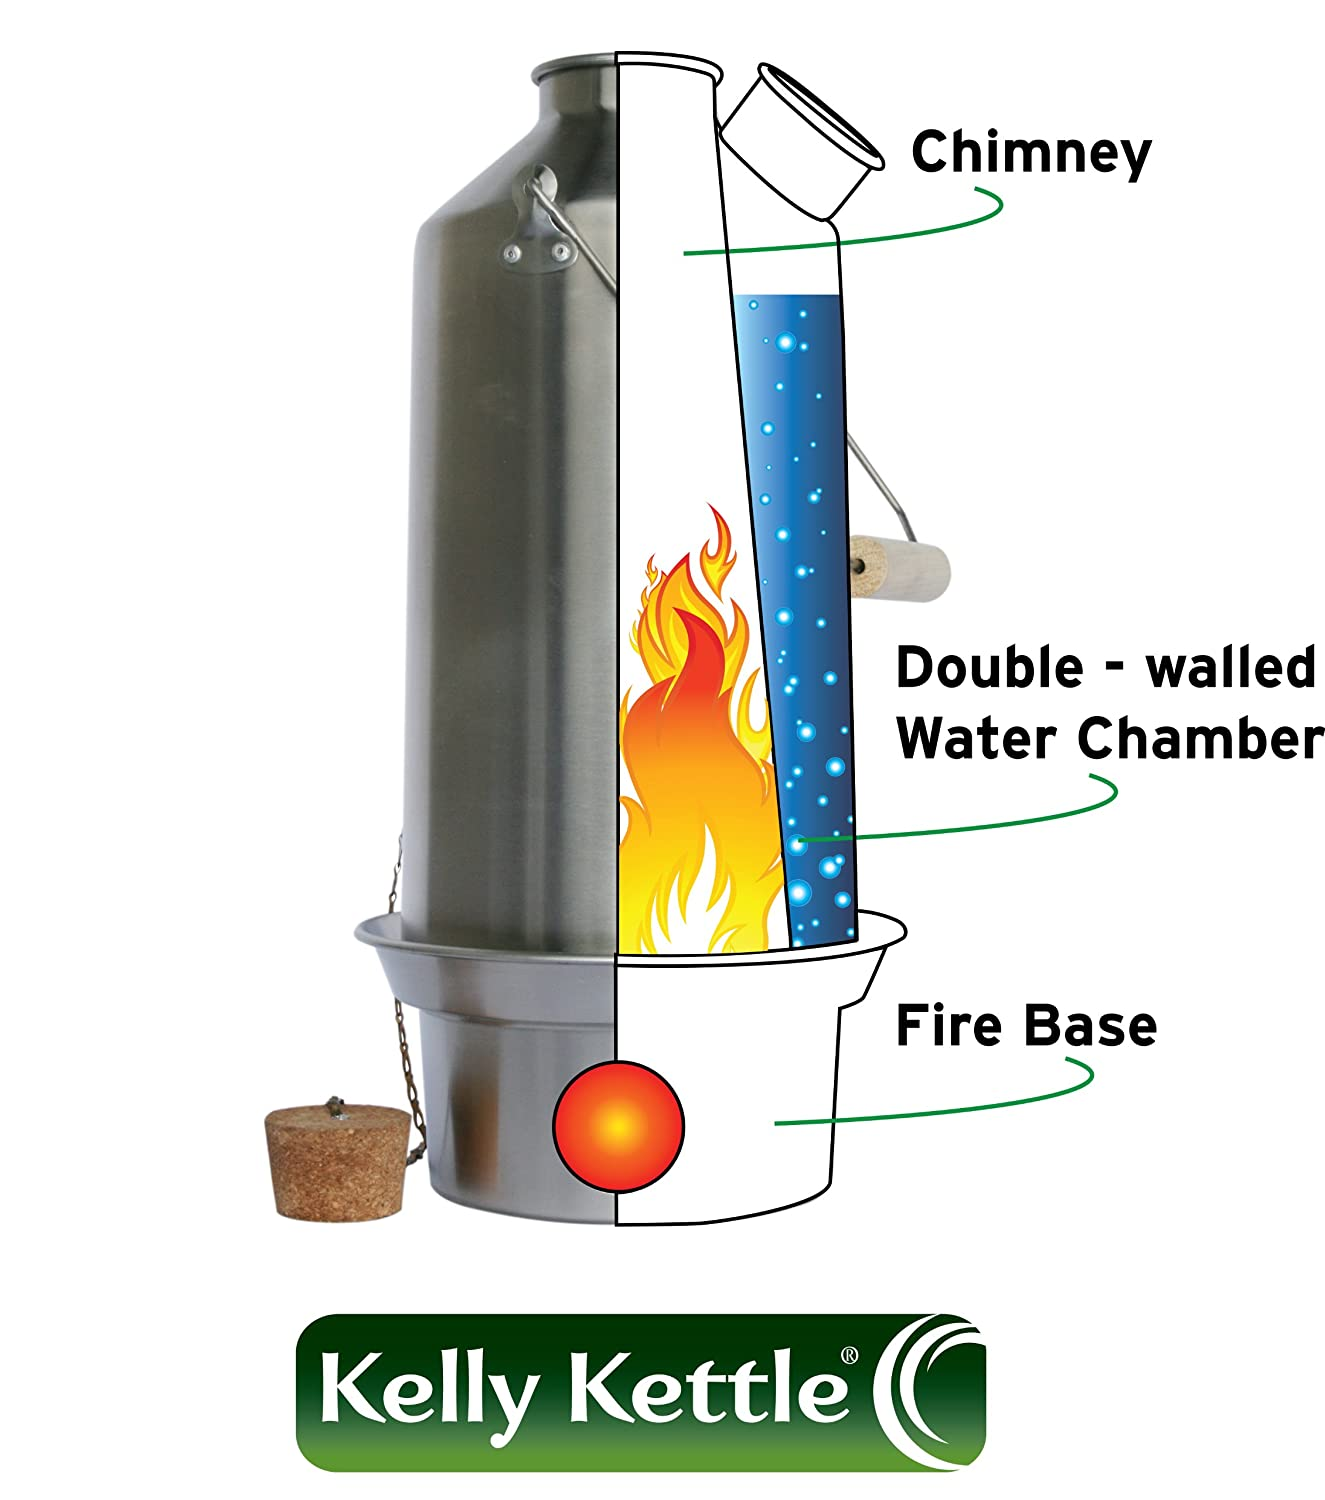 'Scout' Stainless Steel Kelly Kettle® - BASIC KIT (1.2 ltr kettle + Steel Cook Set + Steel pot support + Green Whistle which replaces the Orange Stopper) NEW MODEL - All Welded Construction. No Rivets. Camping Kettle and Camp Stove in one. Ultra fast ligh